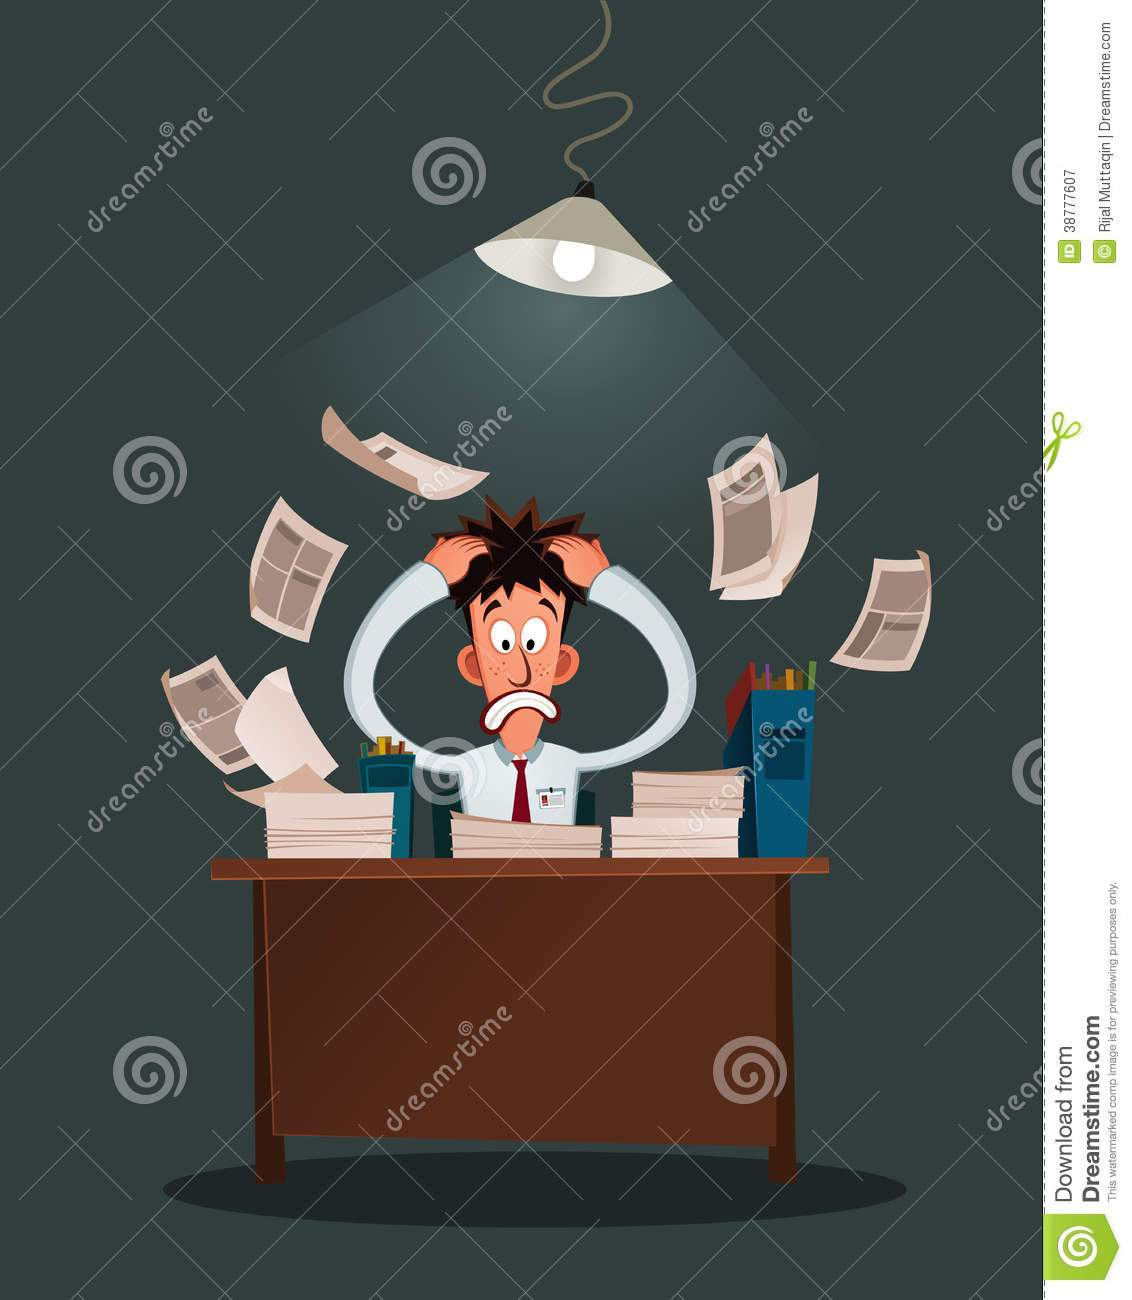 Free clipart stressed office worker » Clipart Portal.